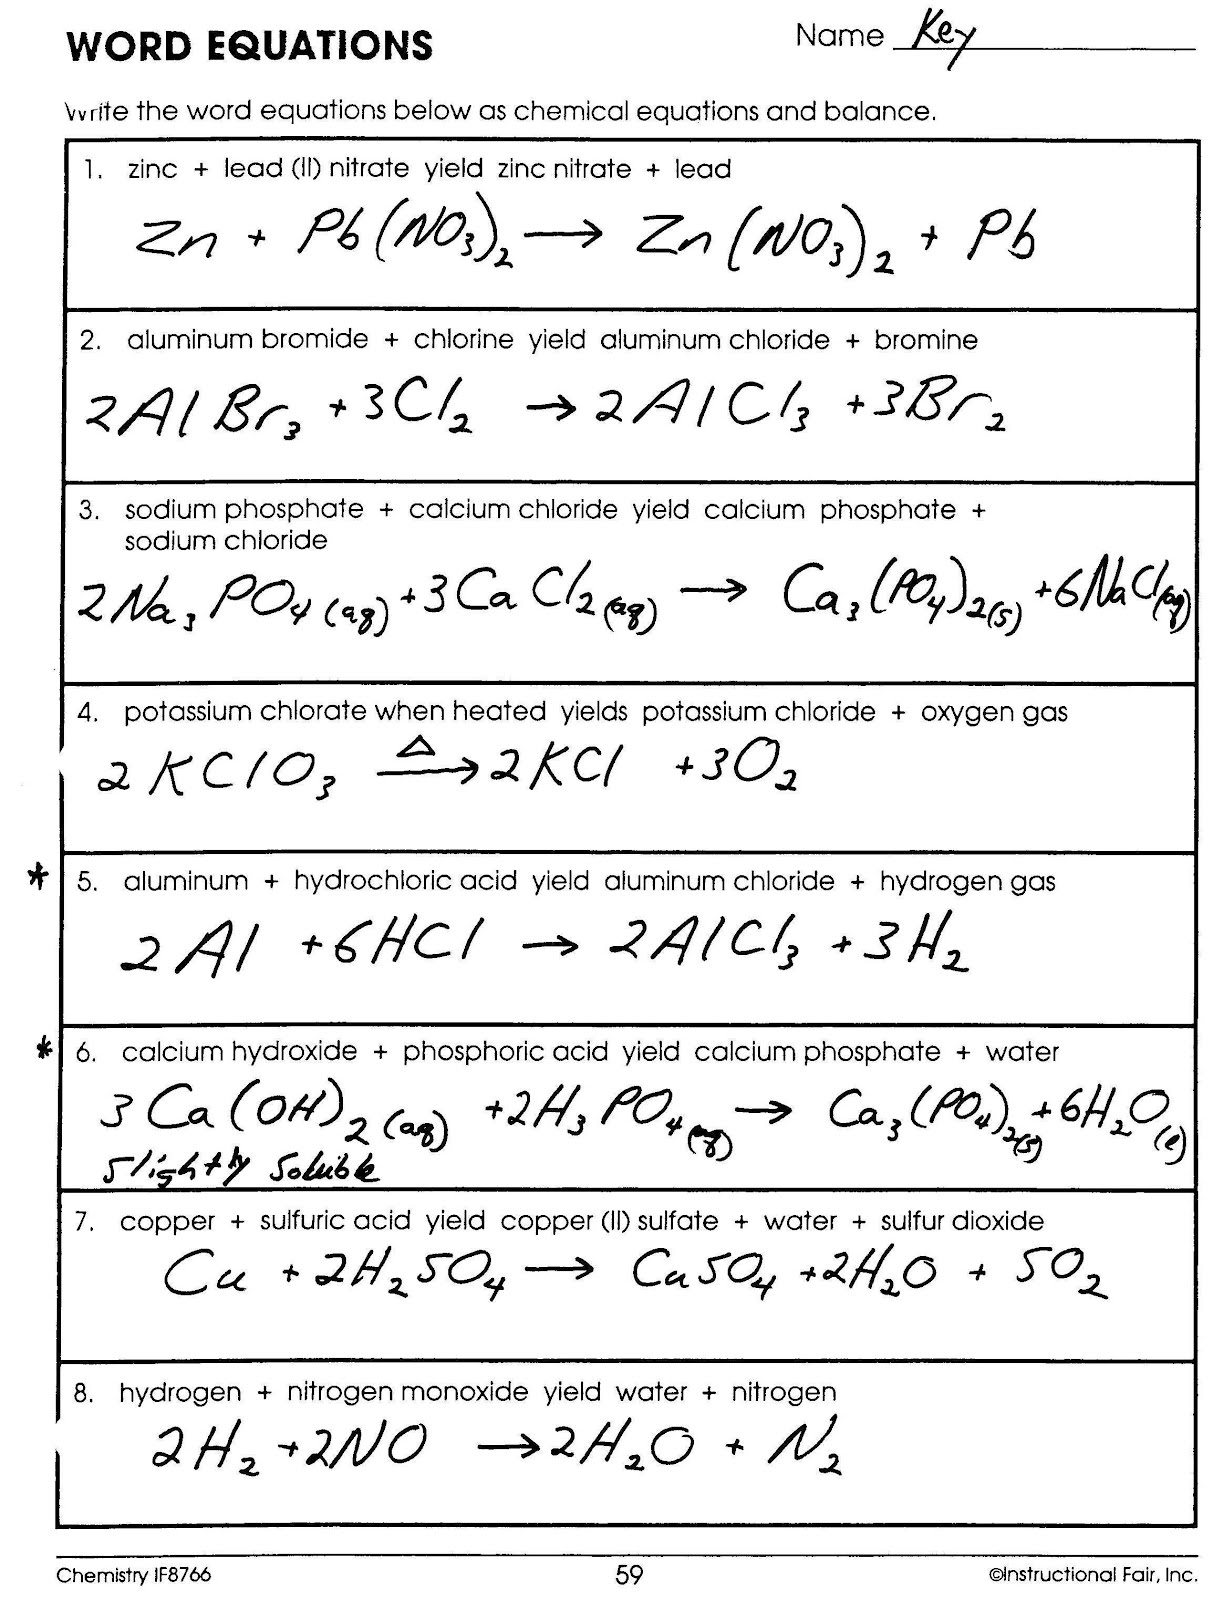 Writing Chemical Word Equations Worksheet - writing chemical word ...